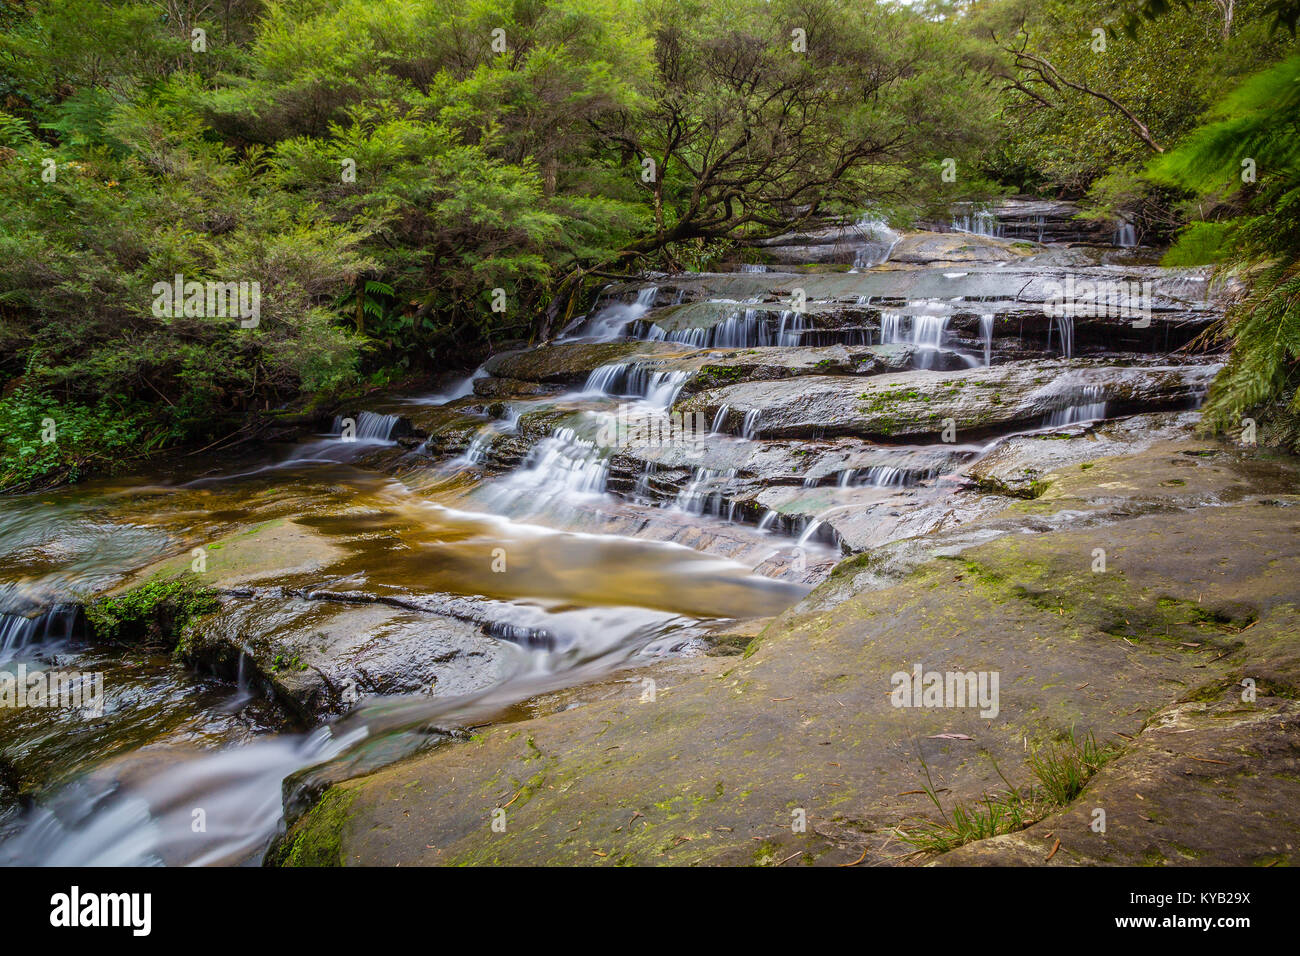 A long exposure shot of the Leura Cascades in National Park The Blue Mountains, Australia. - Stock Image